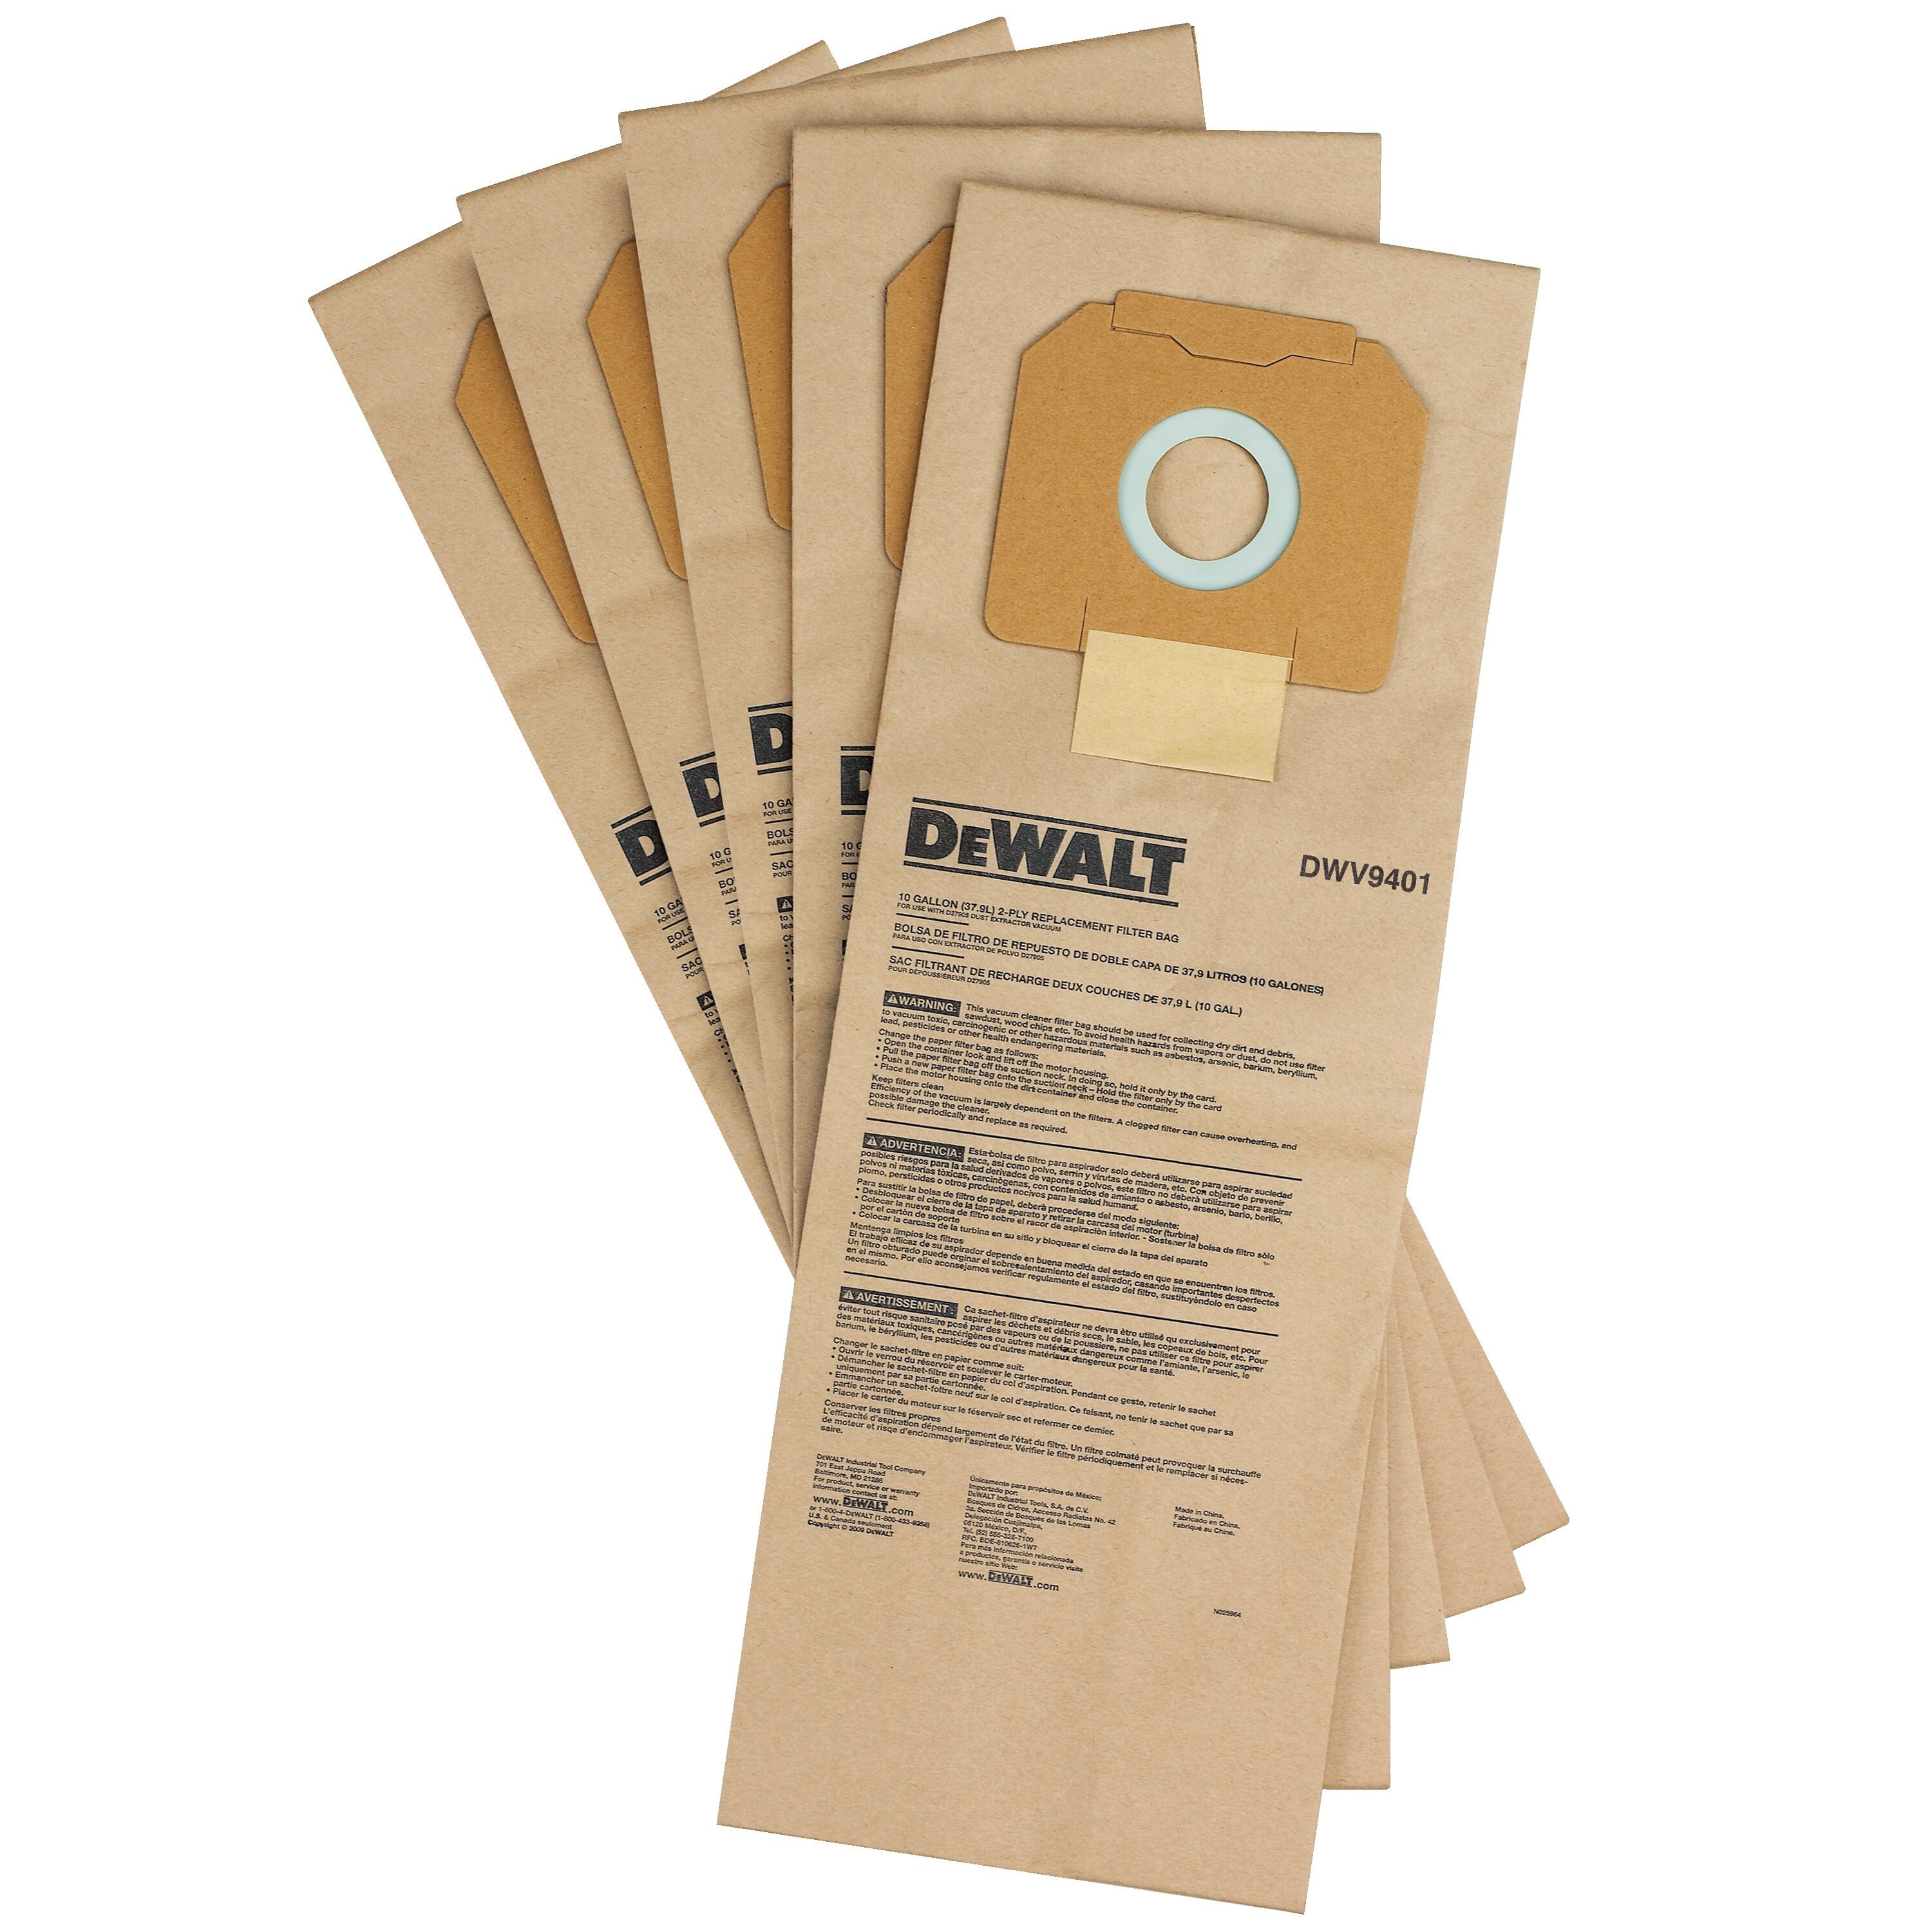 DEWALT - Paper Bag 5 Pack for DEWALT Dust Extractors - DWV9401